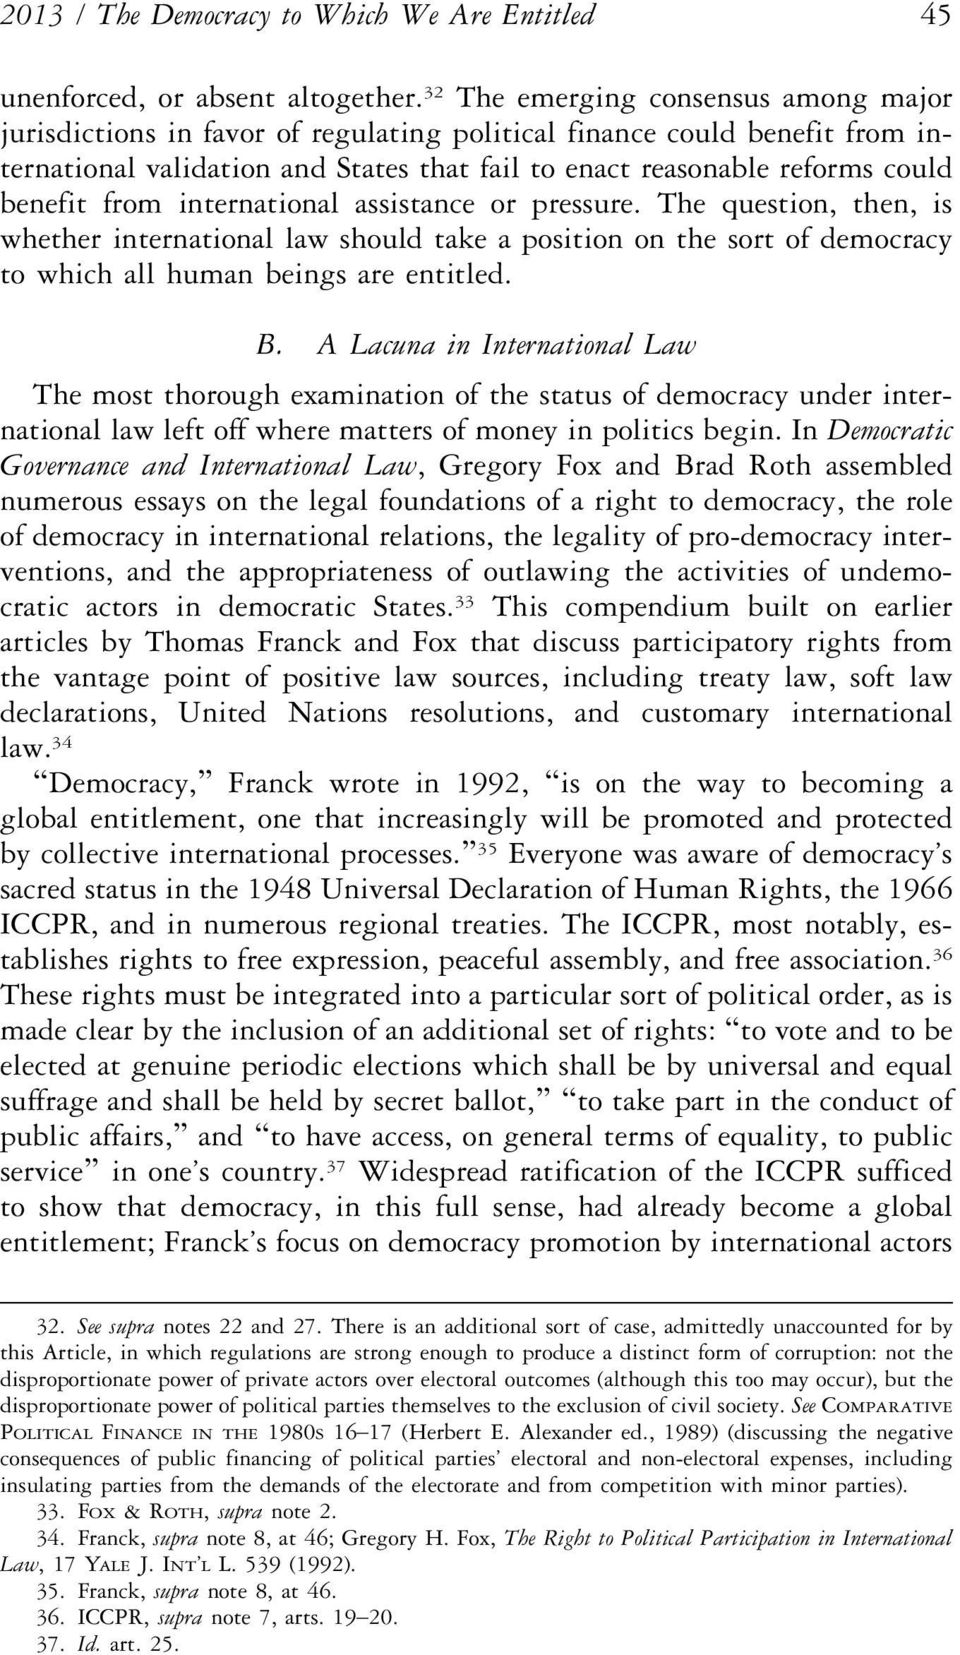 from international assistance or pressure. The question, then, is whether international law should take a position on the sort of democracy to which all human beings are entitled. B.